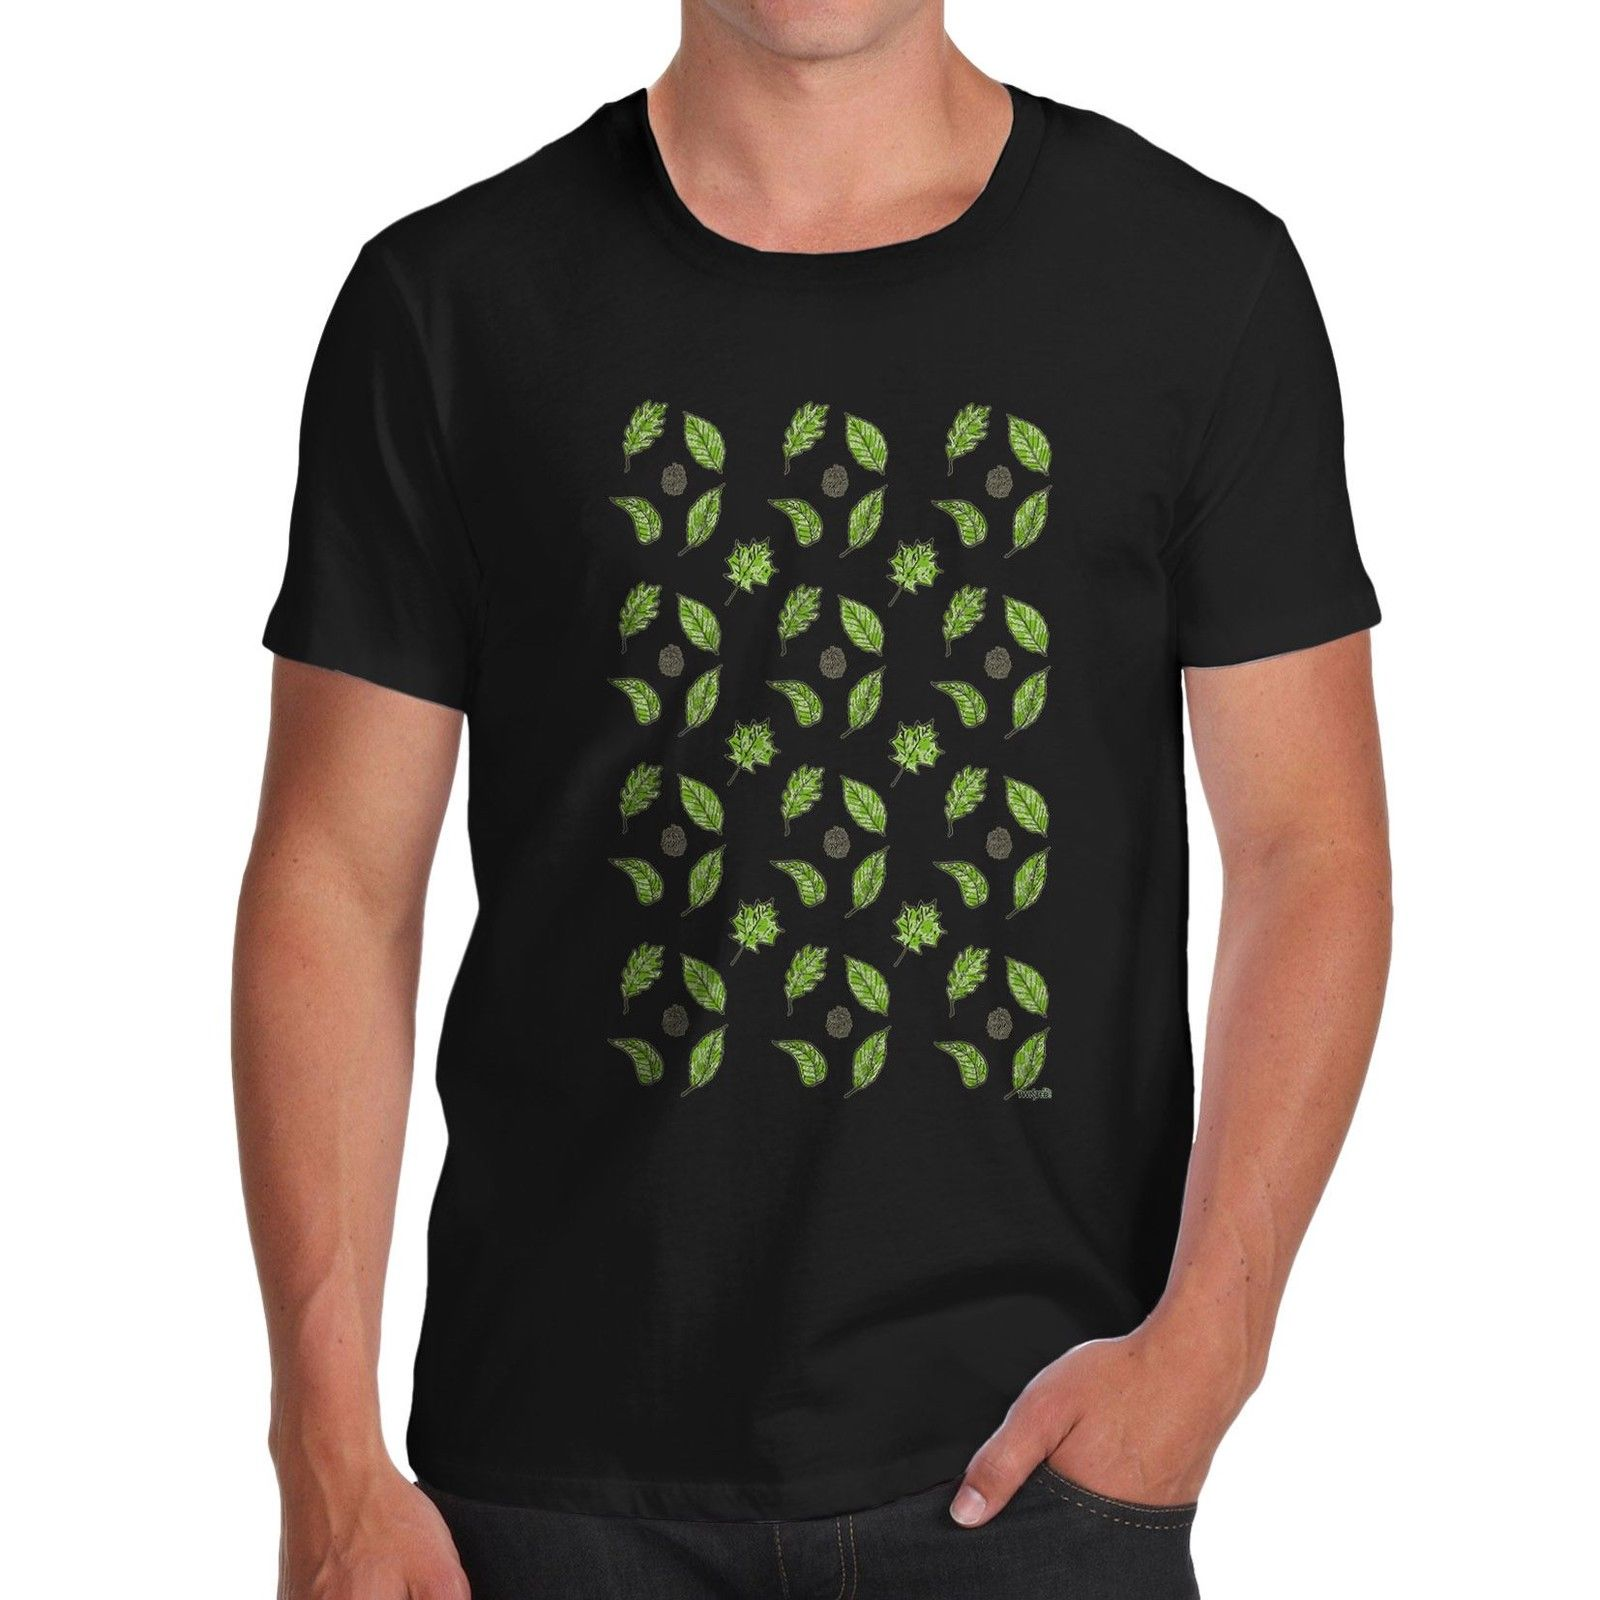 Shirt design pattern